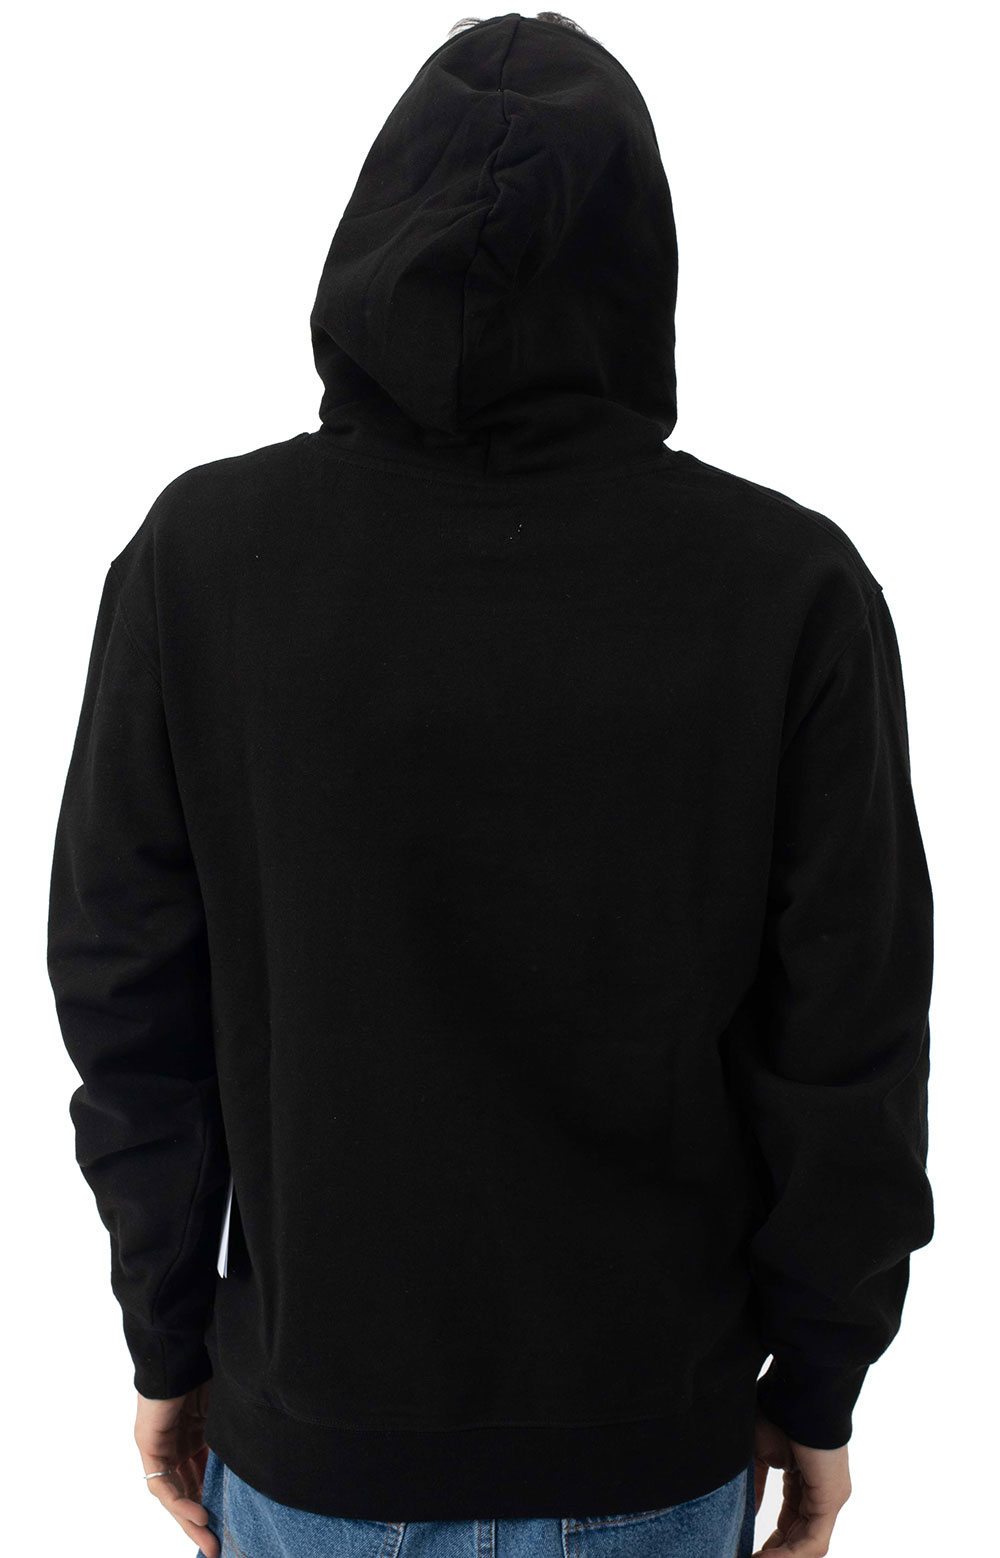 Nouvelle IV Pullover Hoodie - Black 3